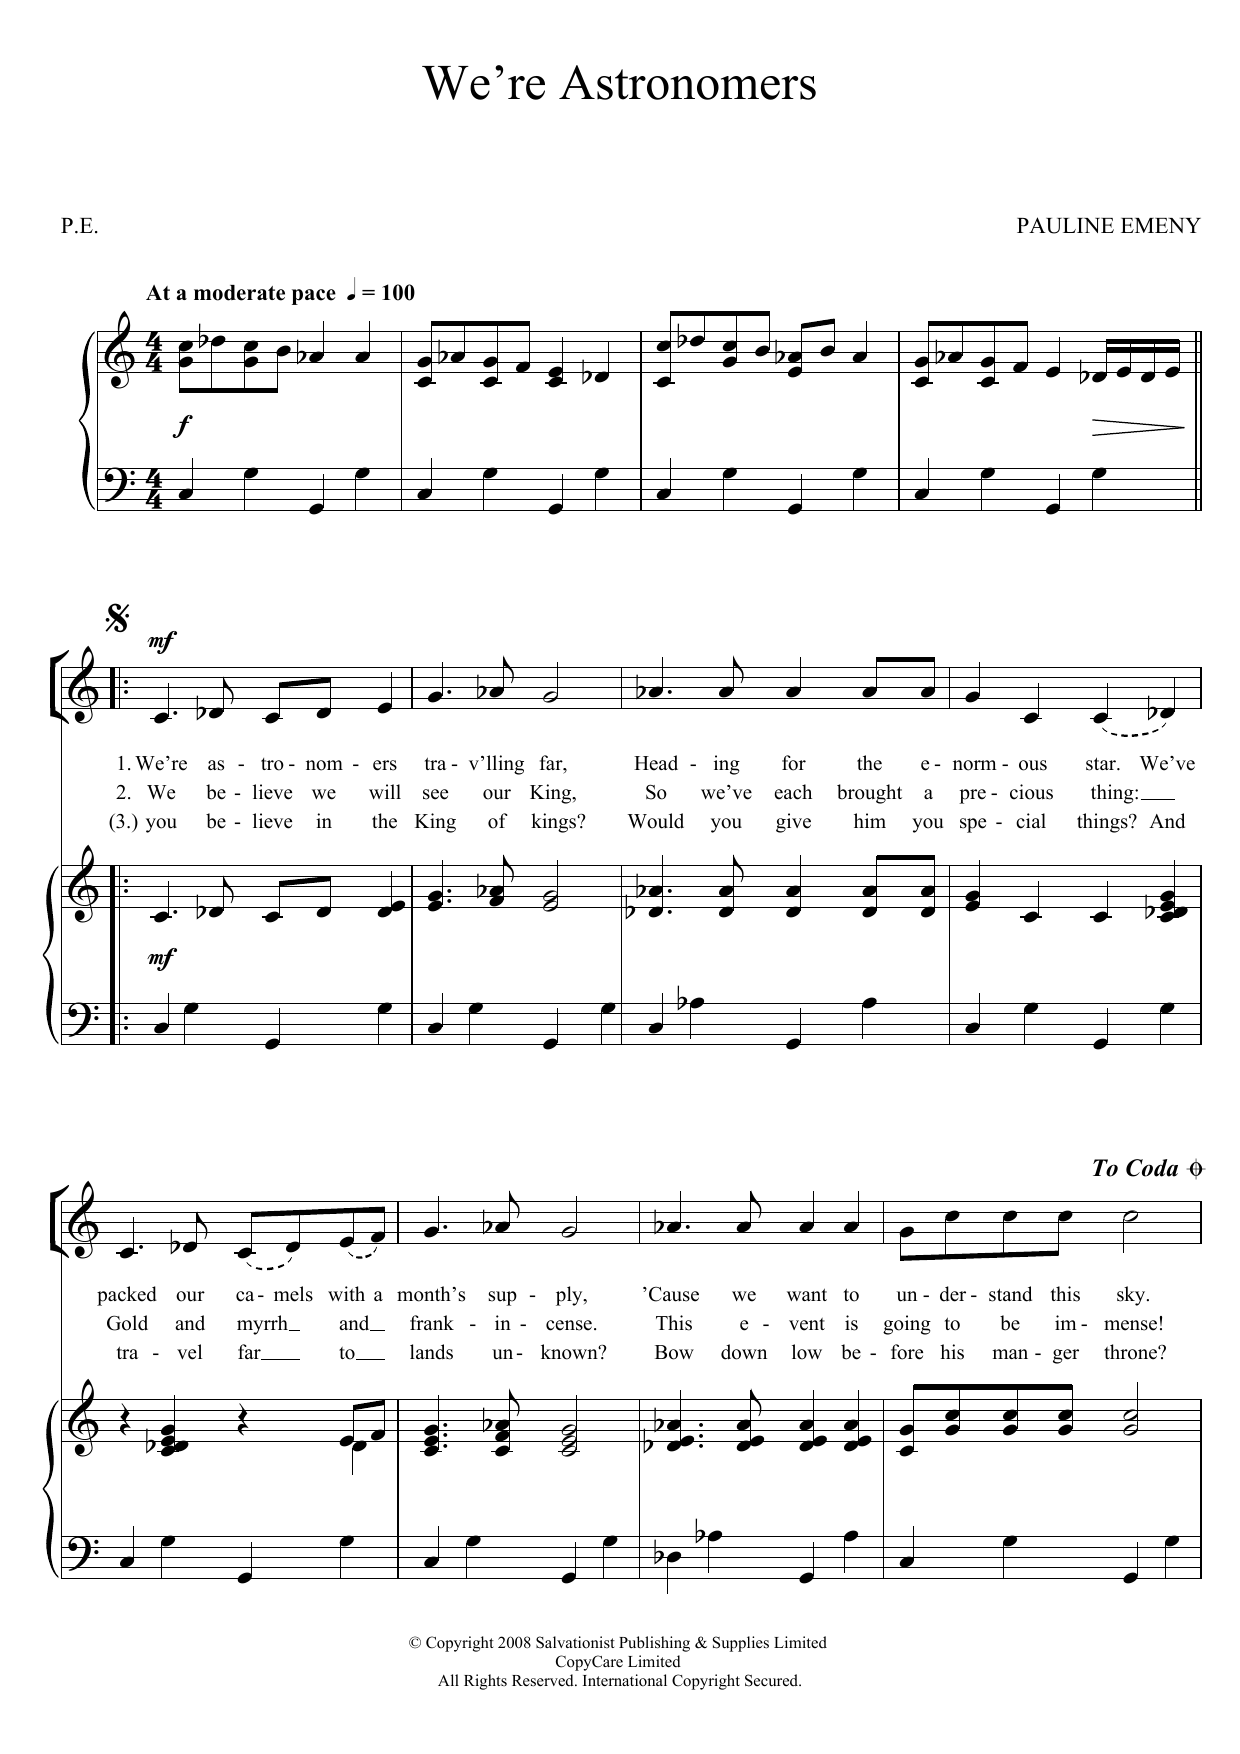 We're Astronomers Sheet Music